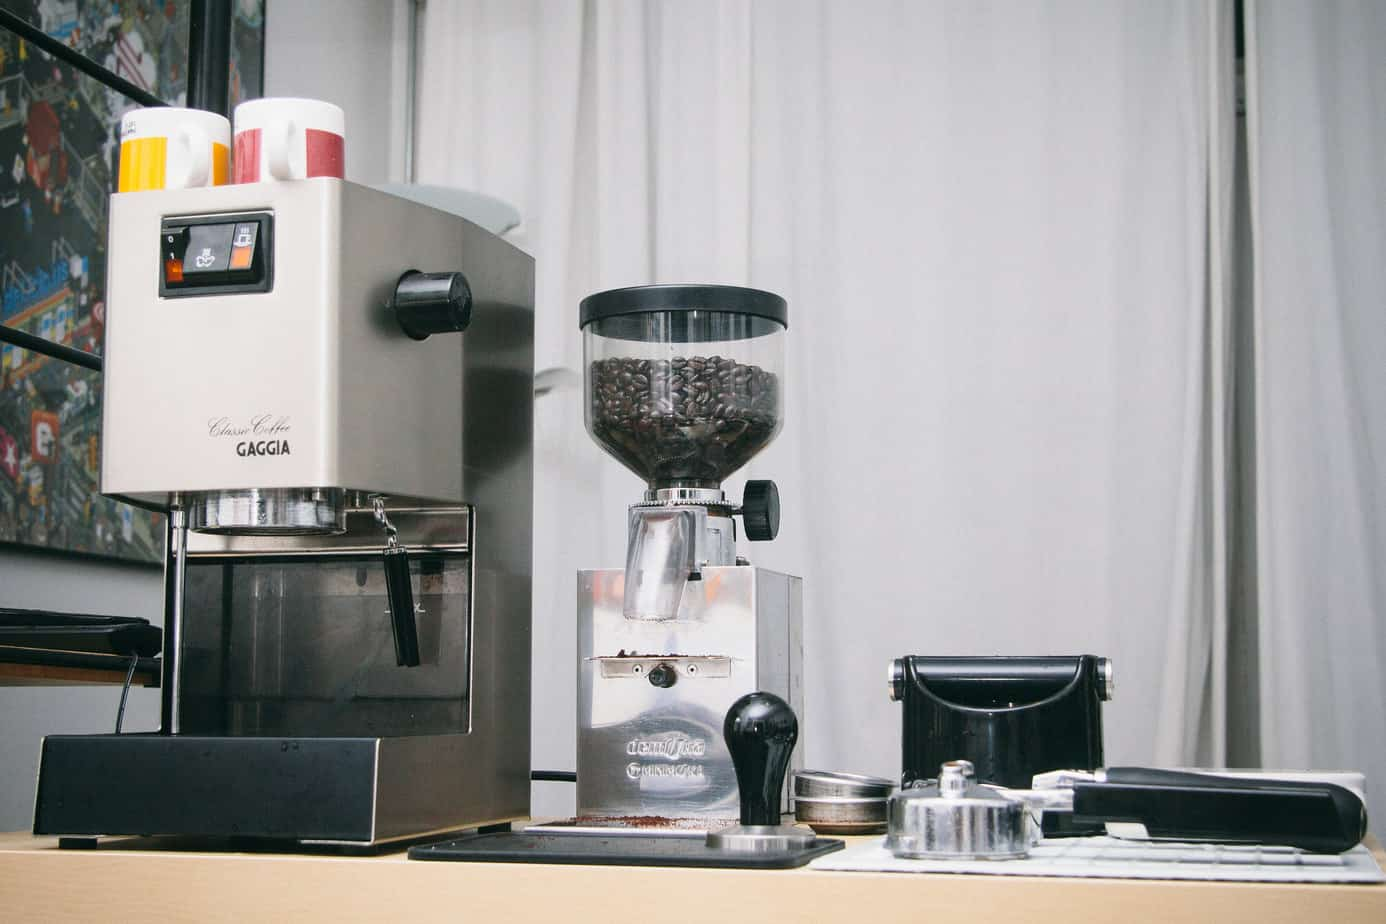 Gaggia Classic espresso machine with other espresso making equipment